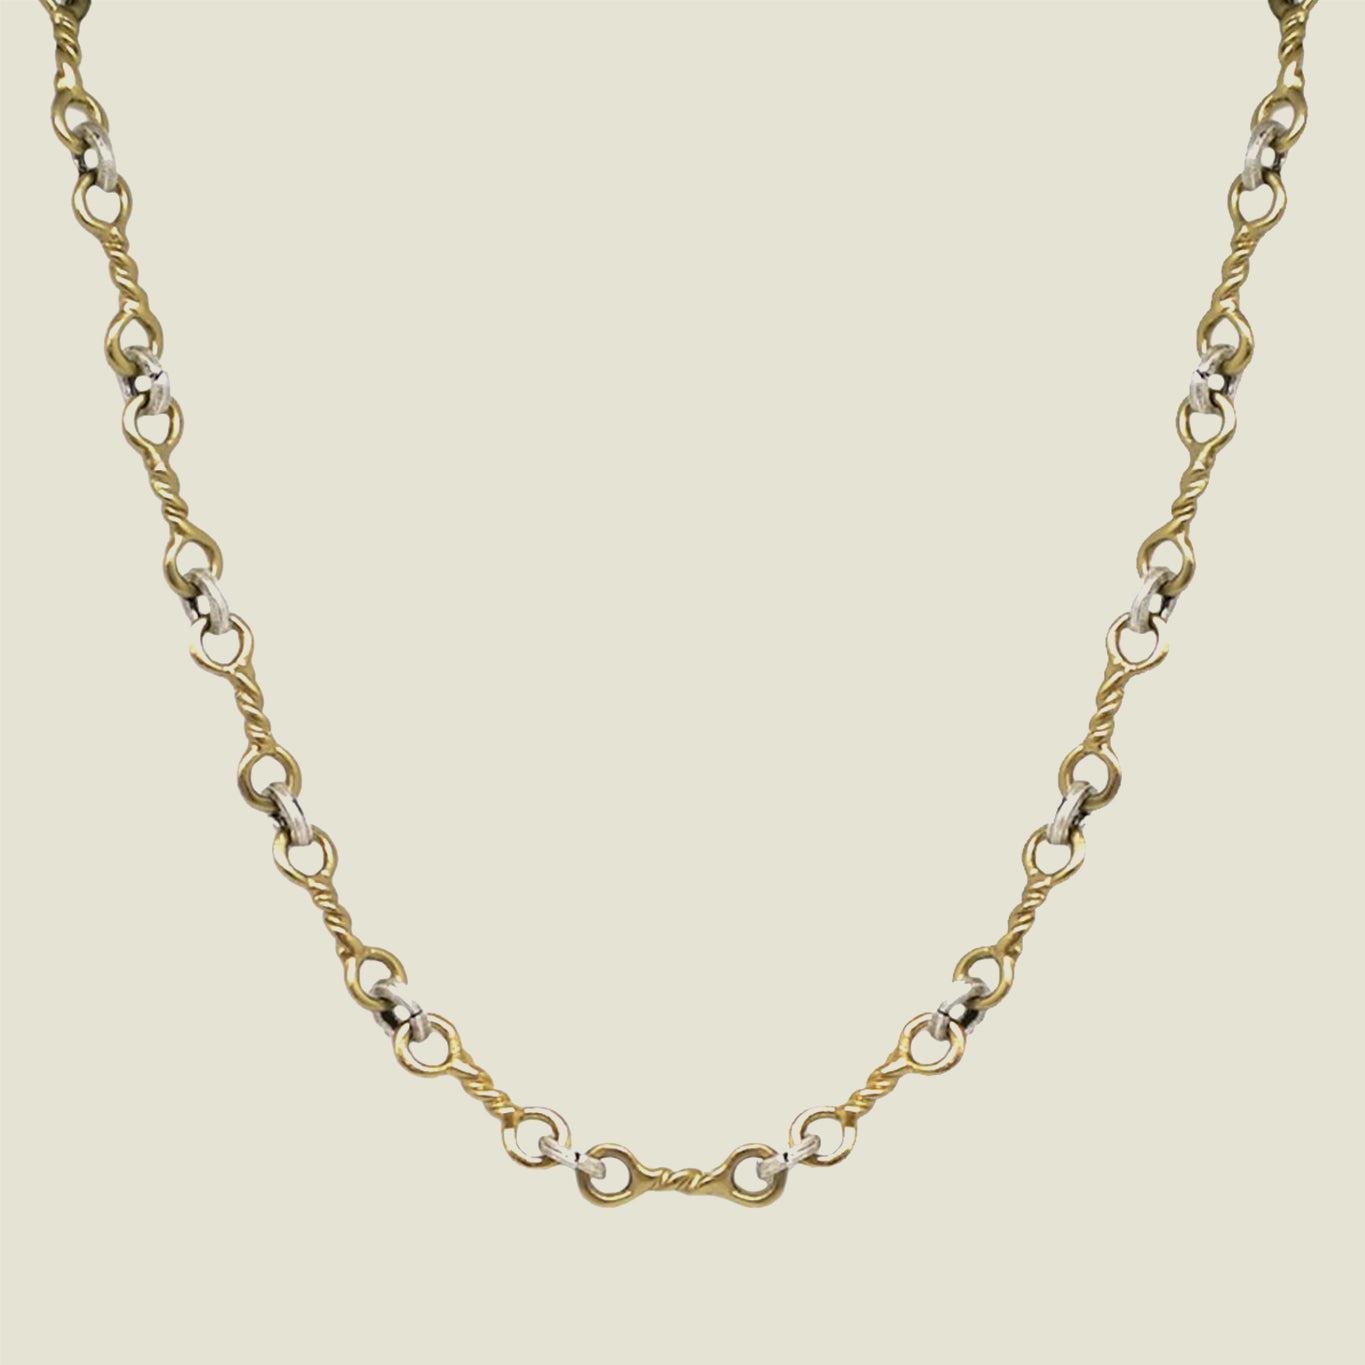 Gold Twisted Ring Necklace - Blackbird General Store